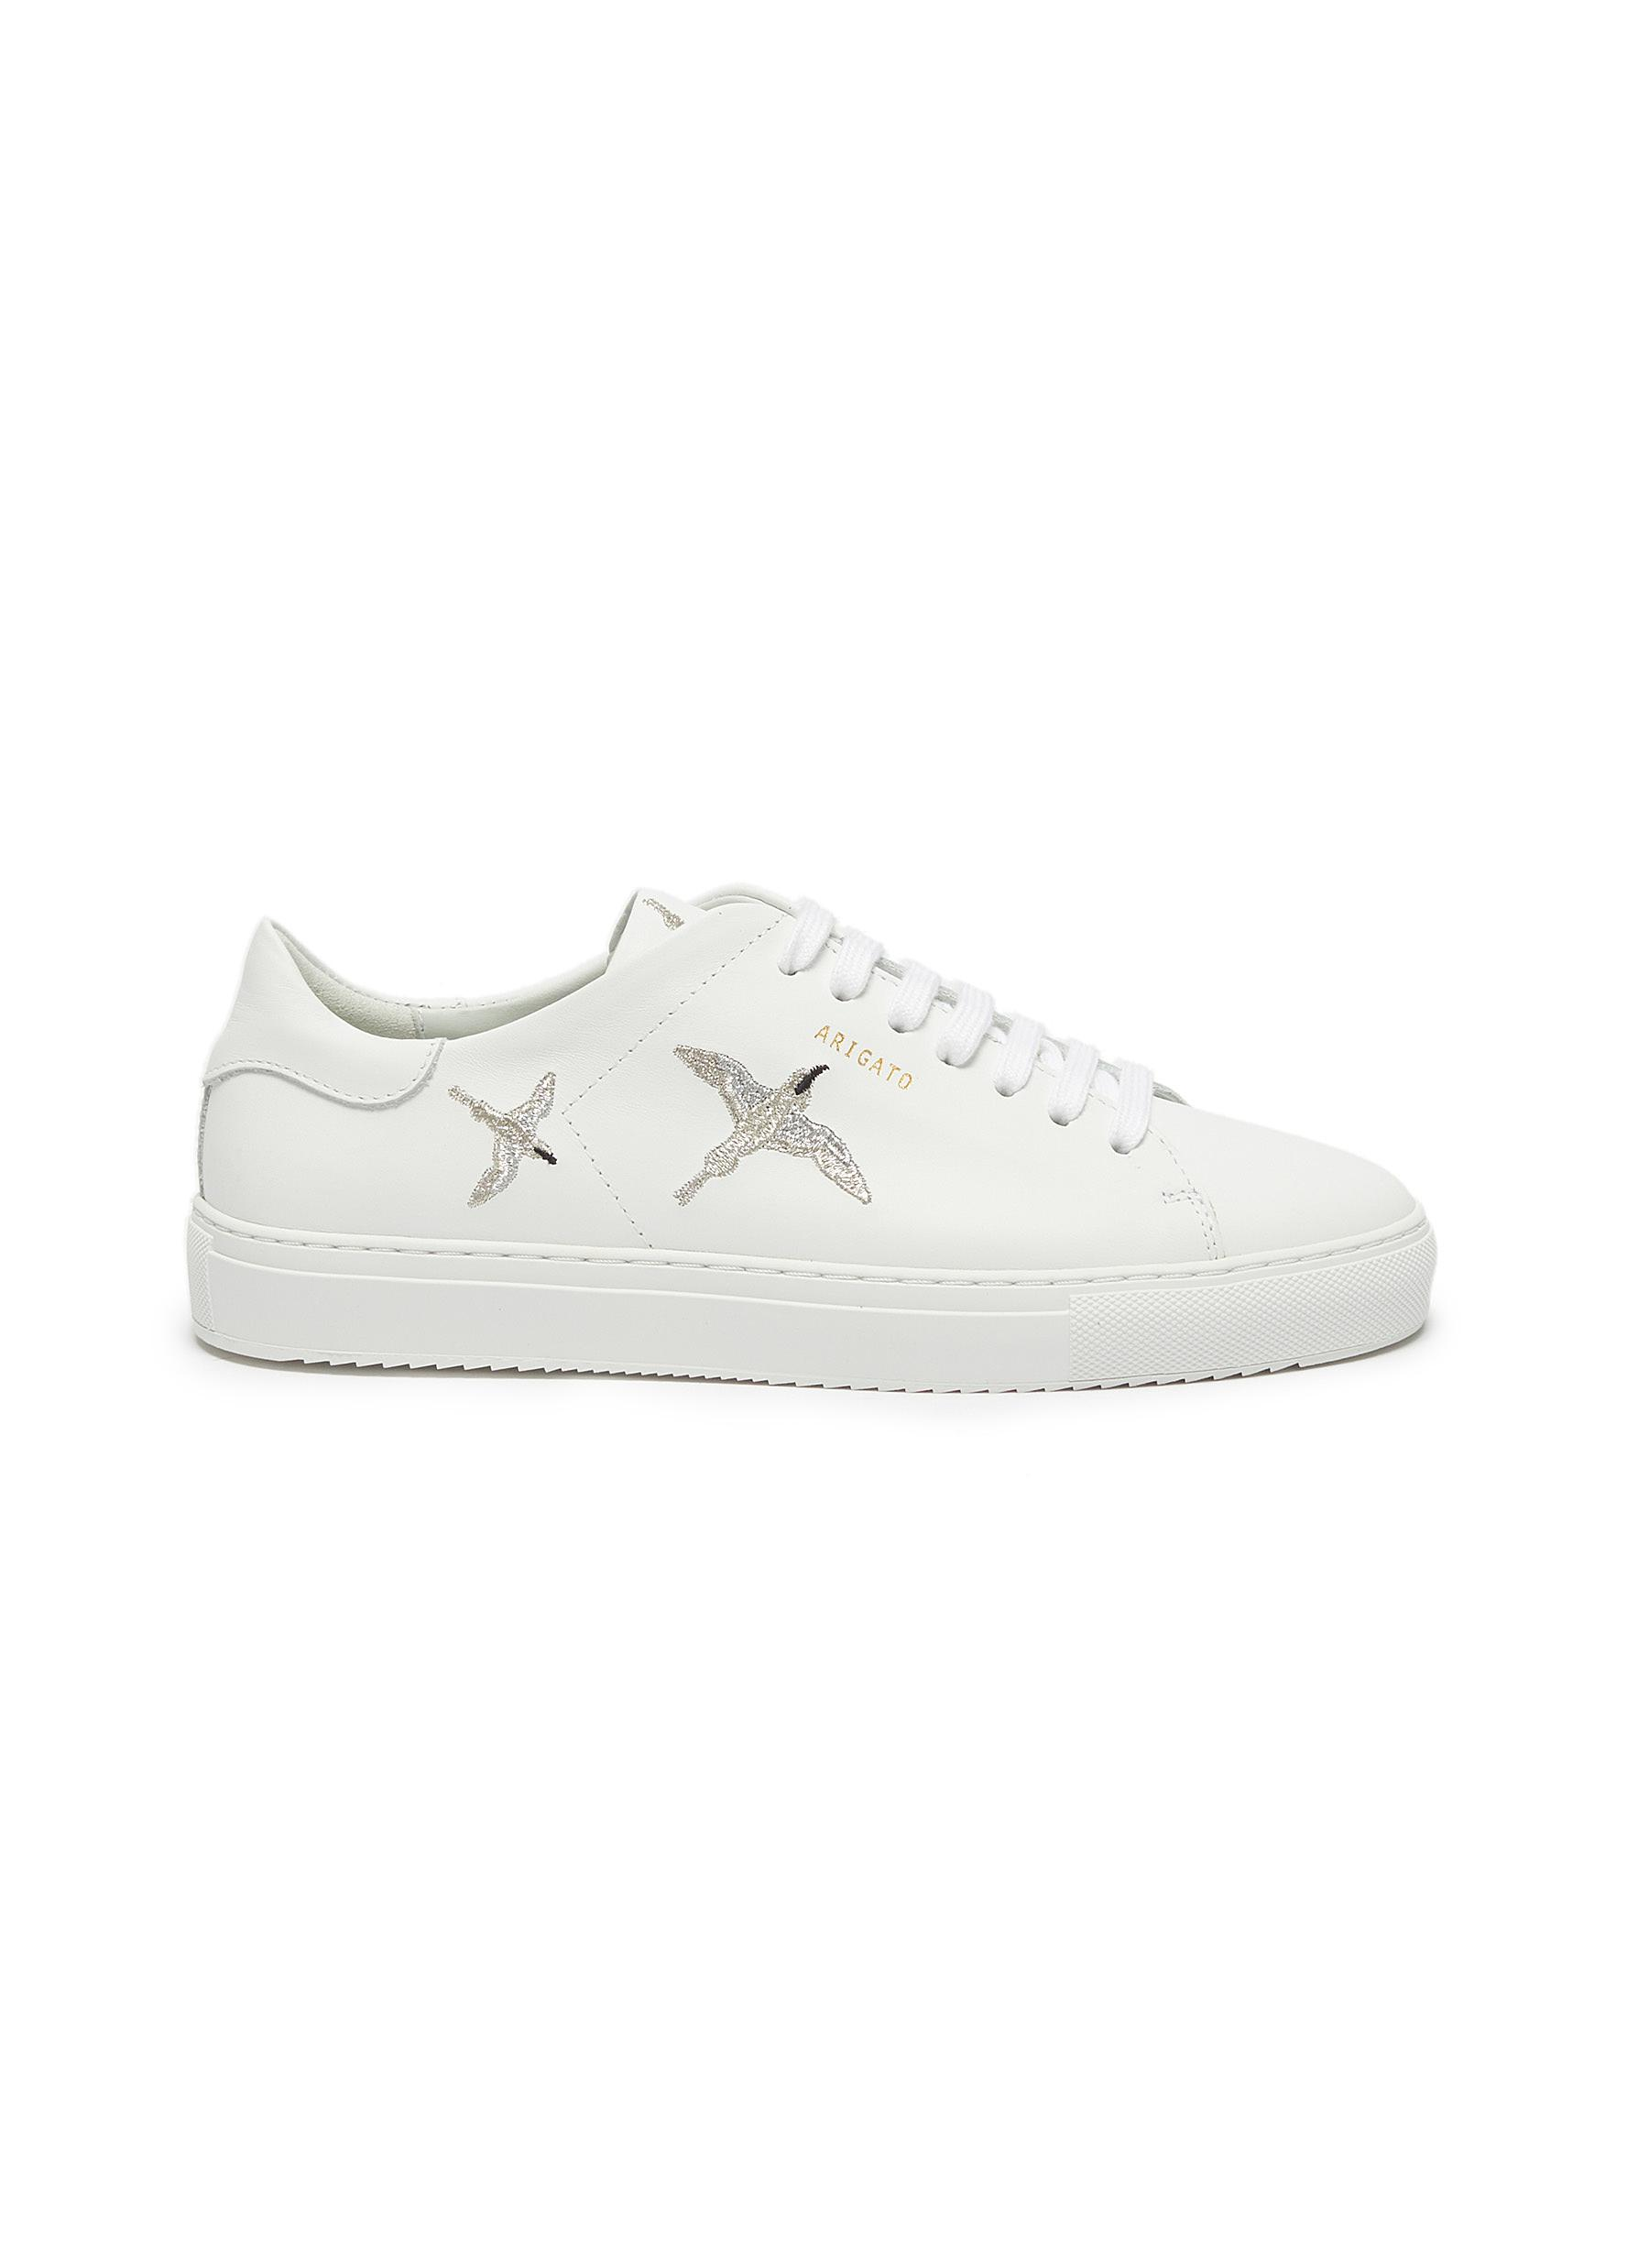 shop Axel Arigato 'Clean 90' bird embroidered leather sneakers online